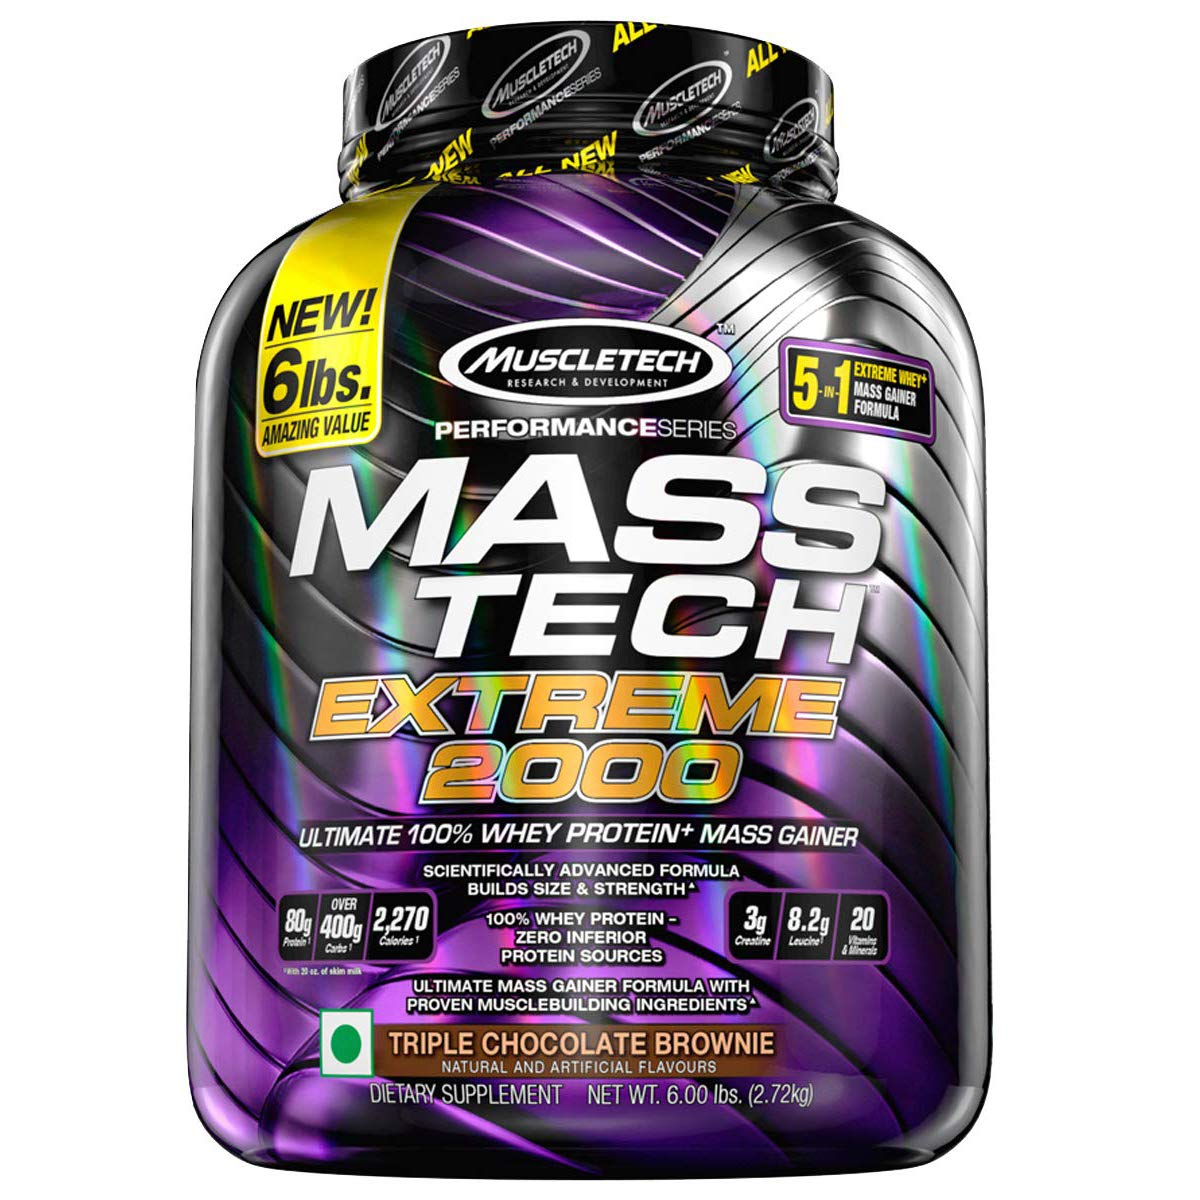 Muscletech Performance Series Mass Gainer